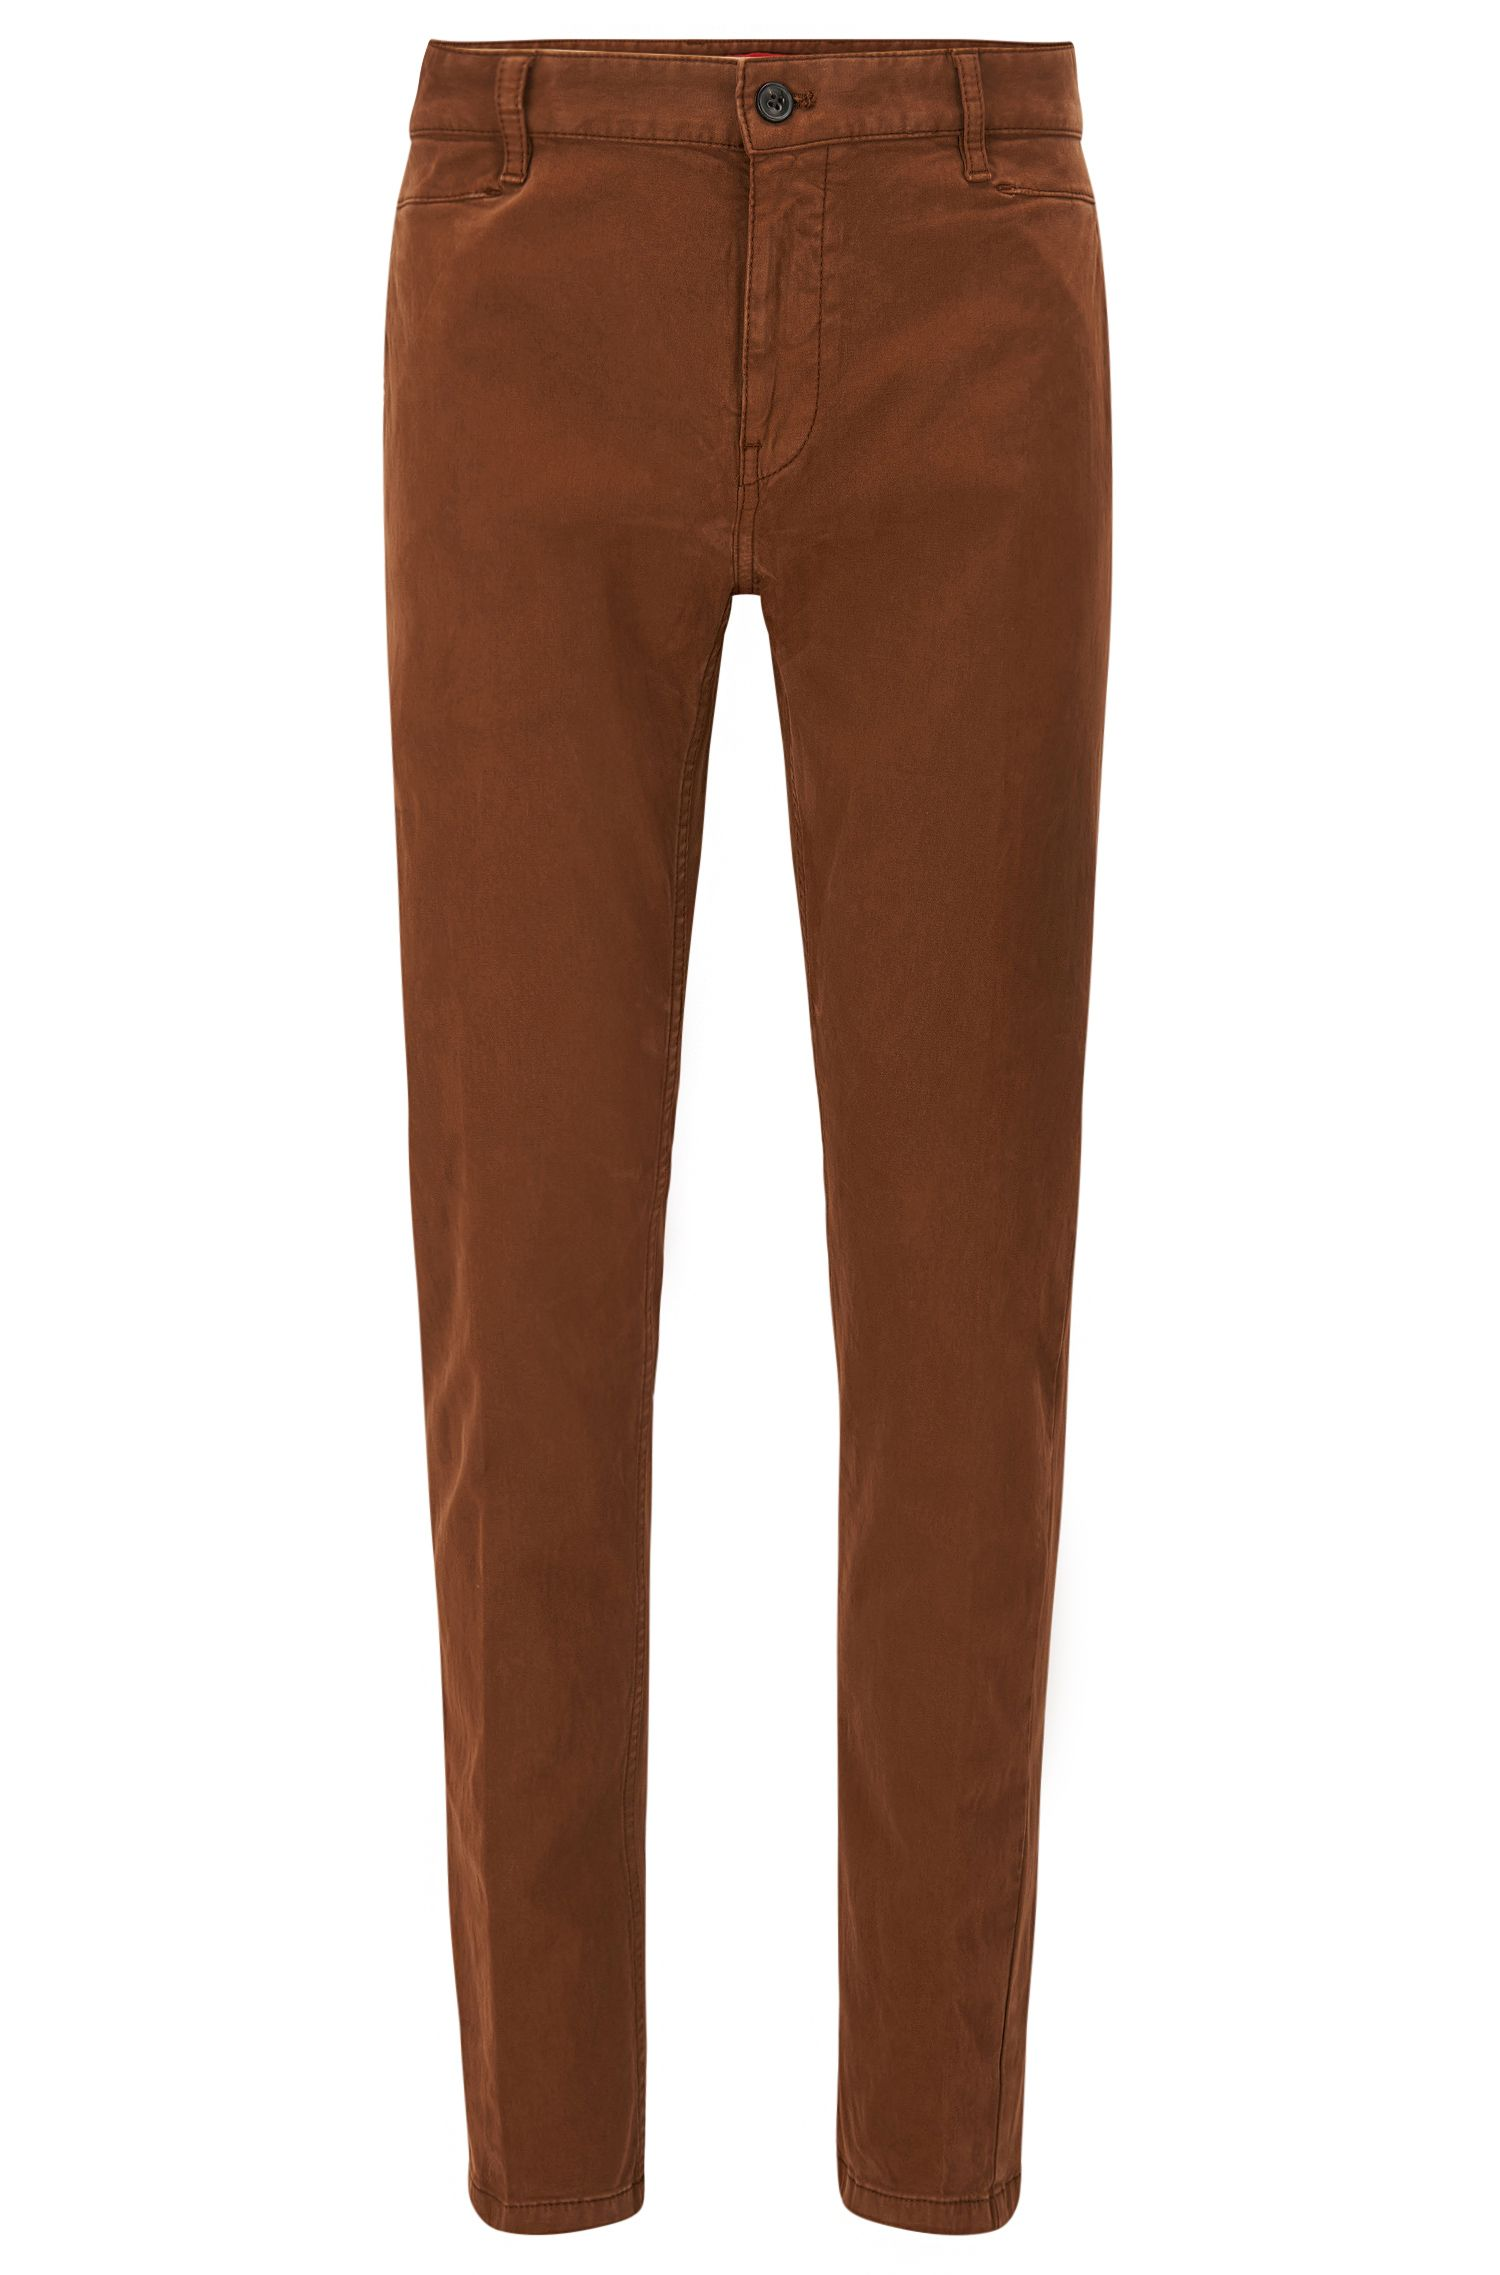 Pantalon Slim Fit en sergé brisé de coton stretch